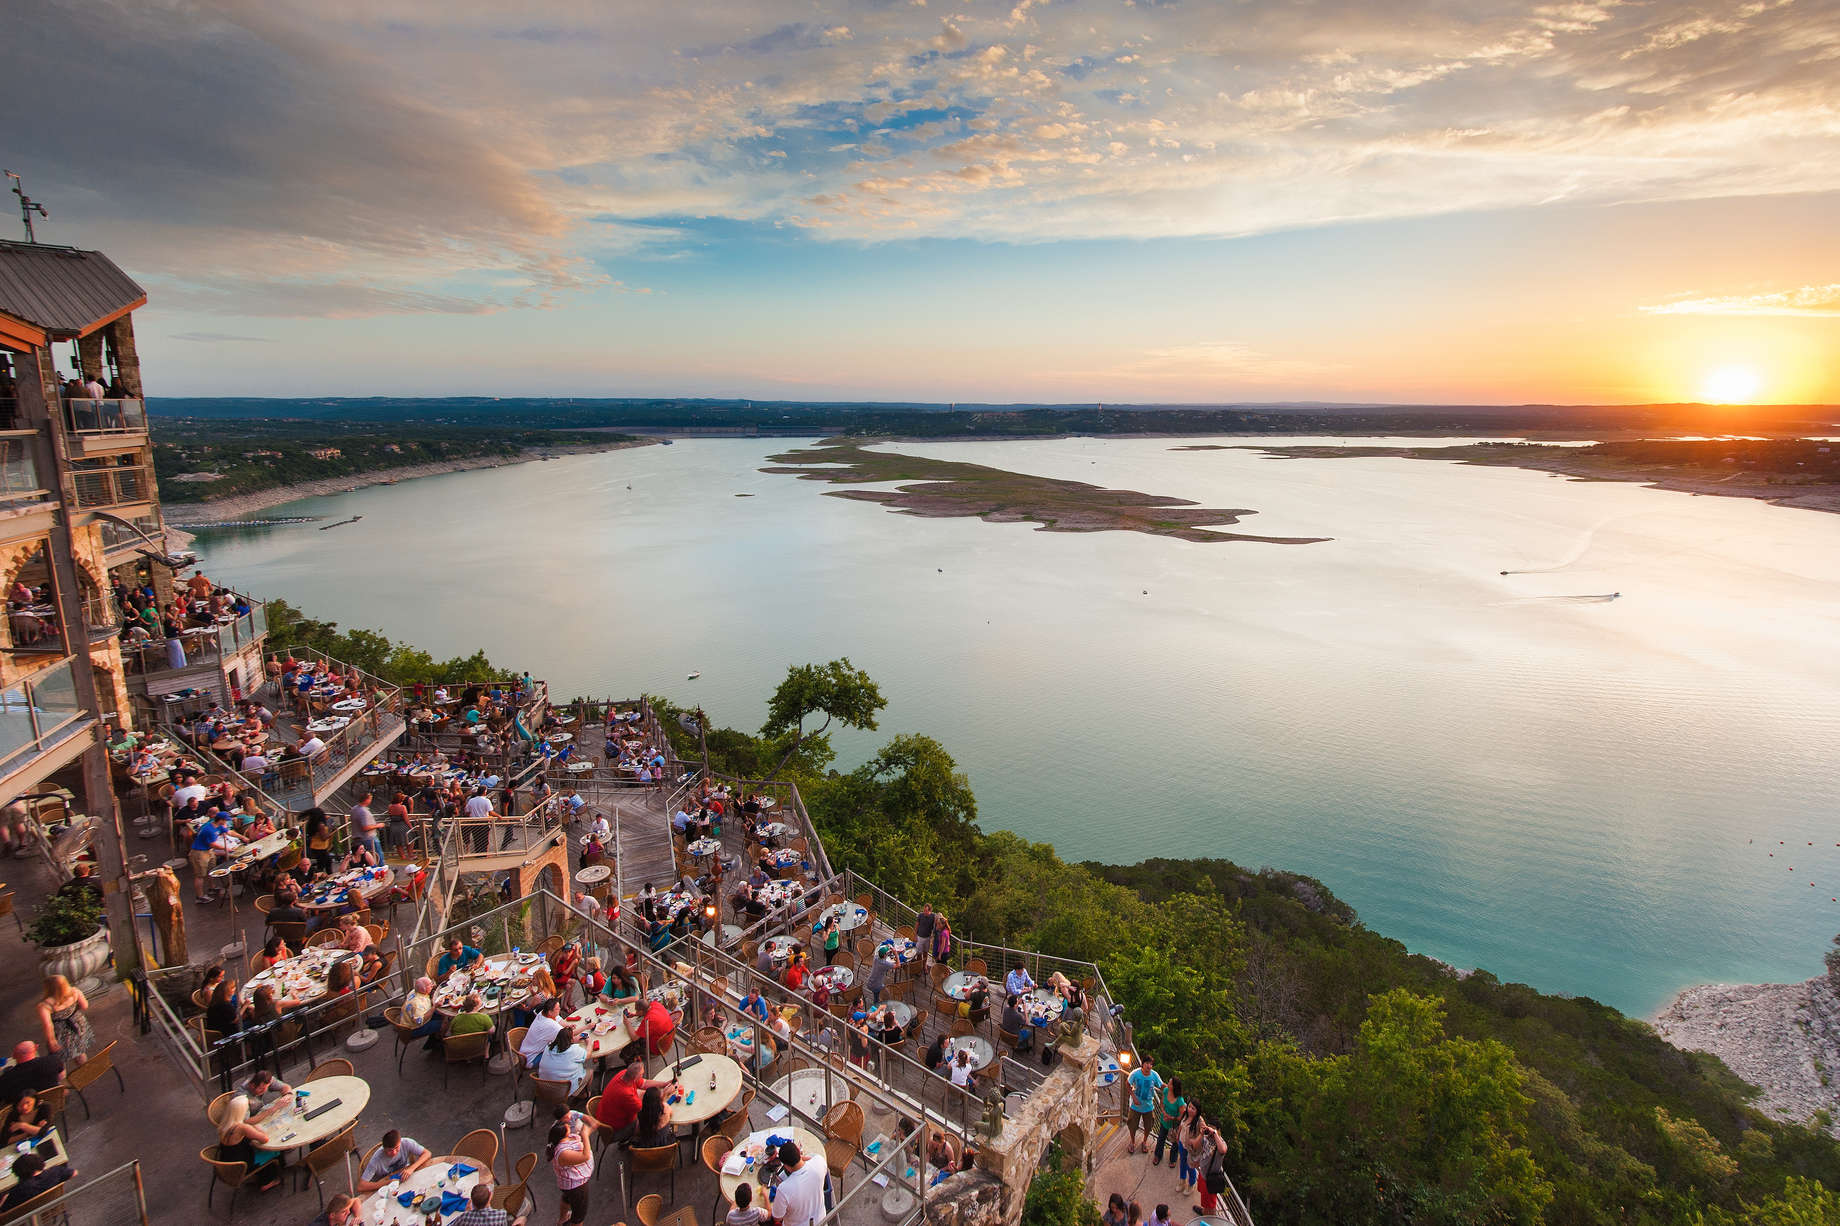 Best Lake Towns in the US: Lakes to Visit for Your Summer Vacation